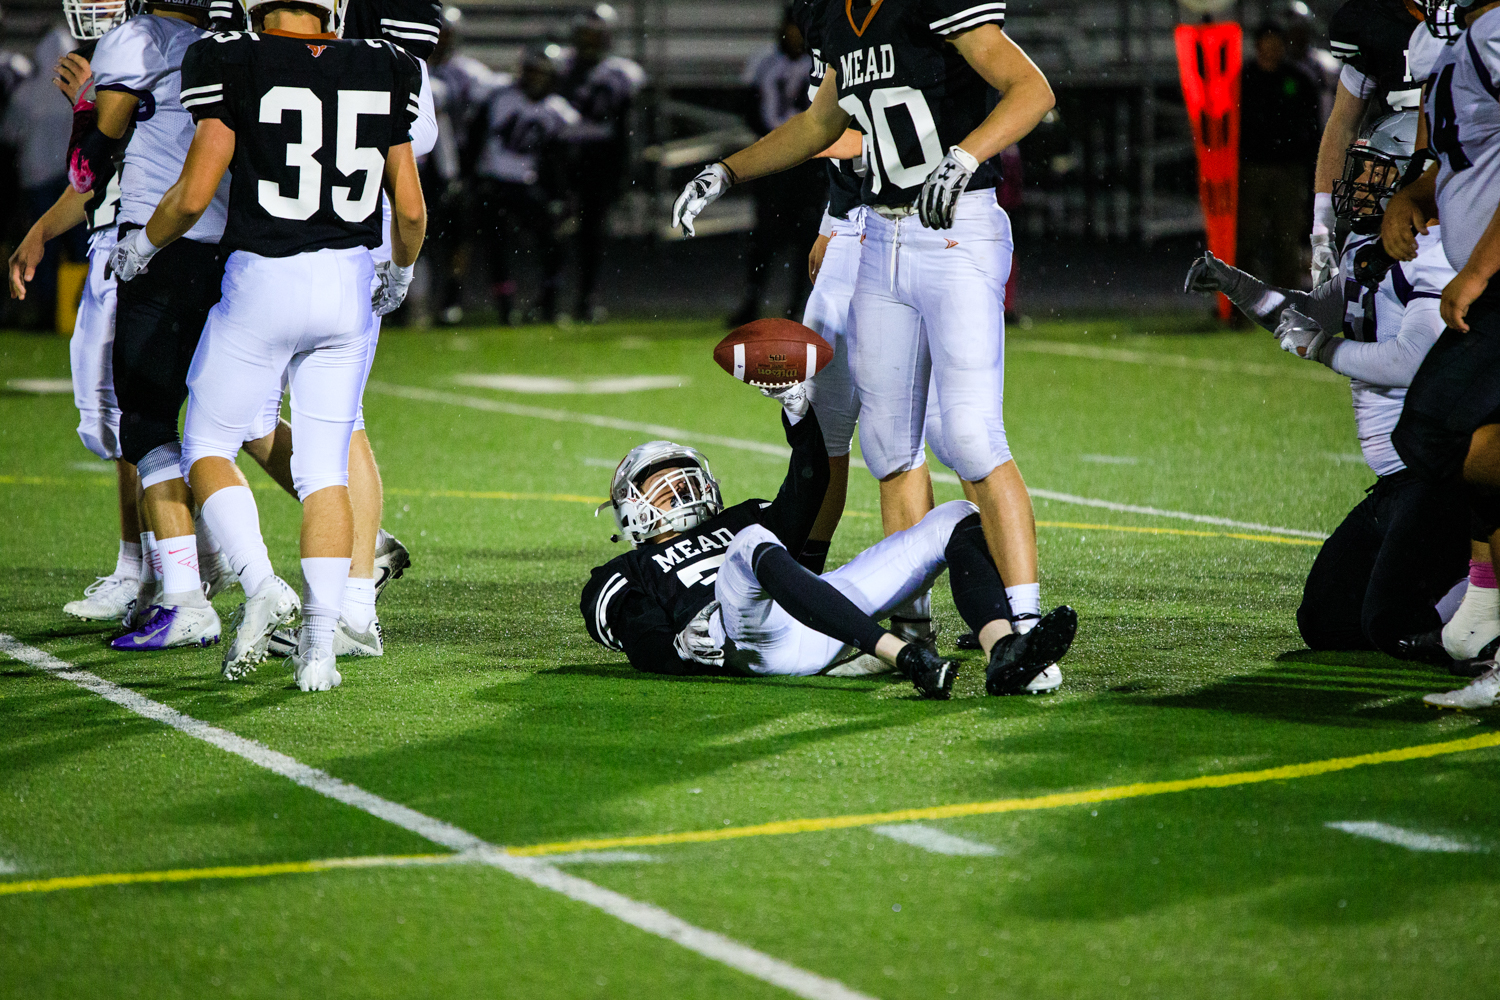 Trey+Ward+holds+up+the+recovered+%27fumble%27+that+was+overturned.+Mead%2C+however%2C+would+keep+Skyview+from+advancing+past+Mead%27s+45-yard+line.